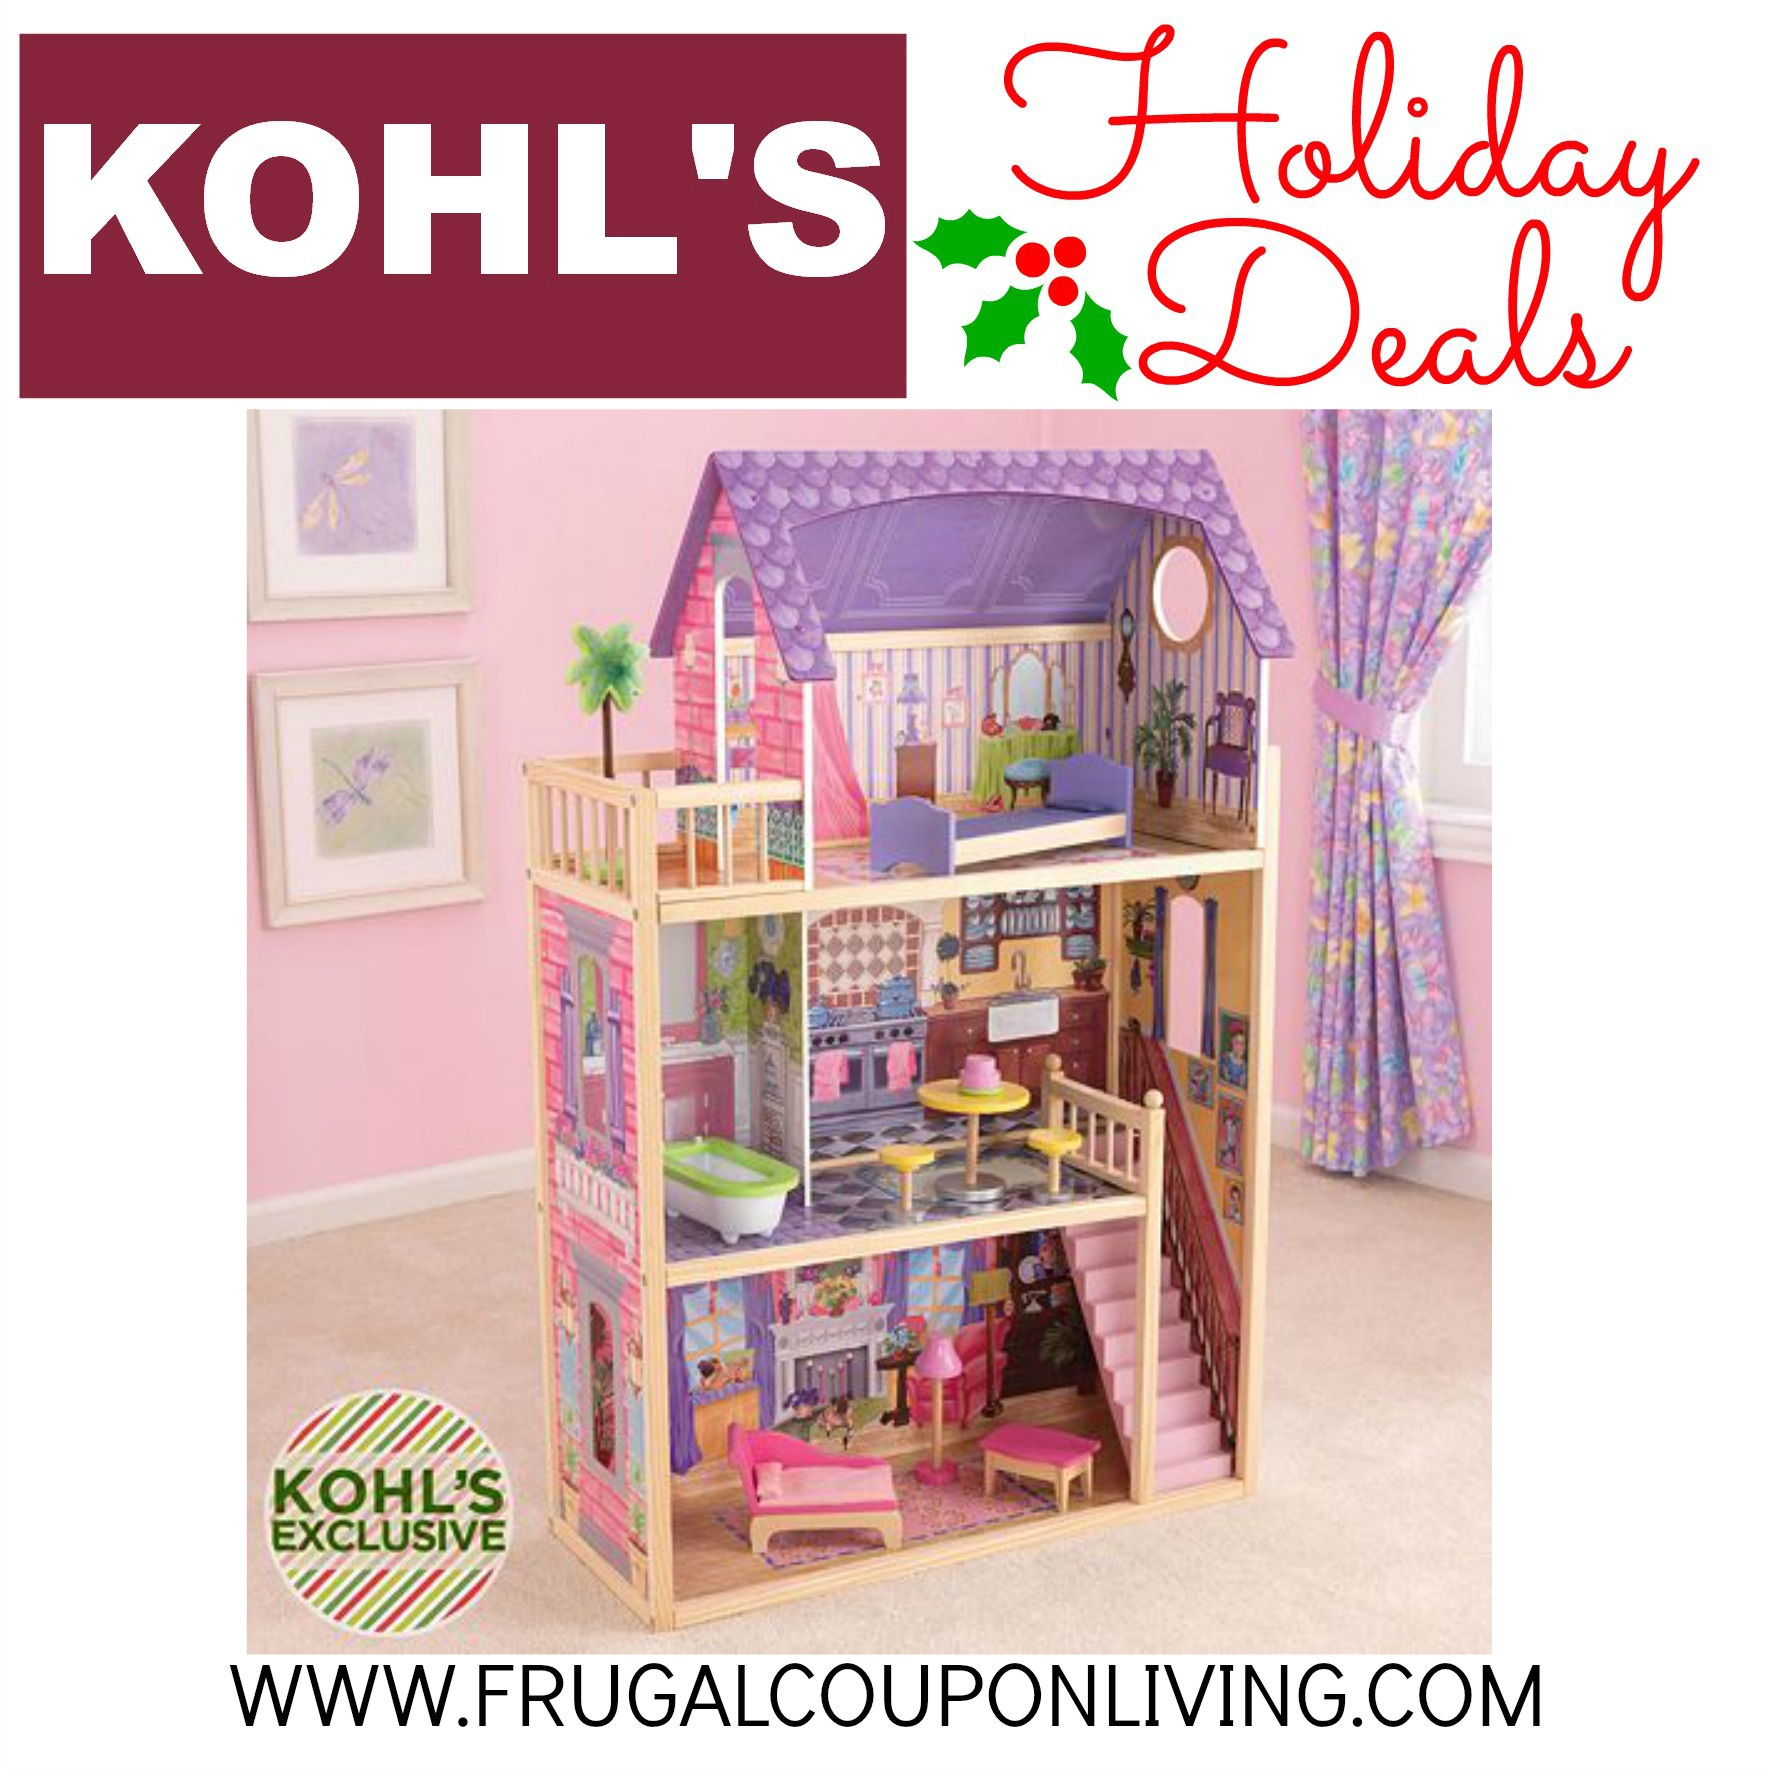 Plush Sale South Africa Kidkraft Pre Black Friday Doll House Sale From Doll Houses Sale Amazon Doll Houses curbed Doll Houses For Sale